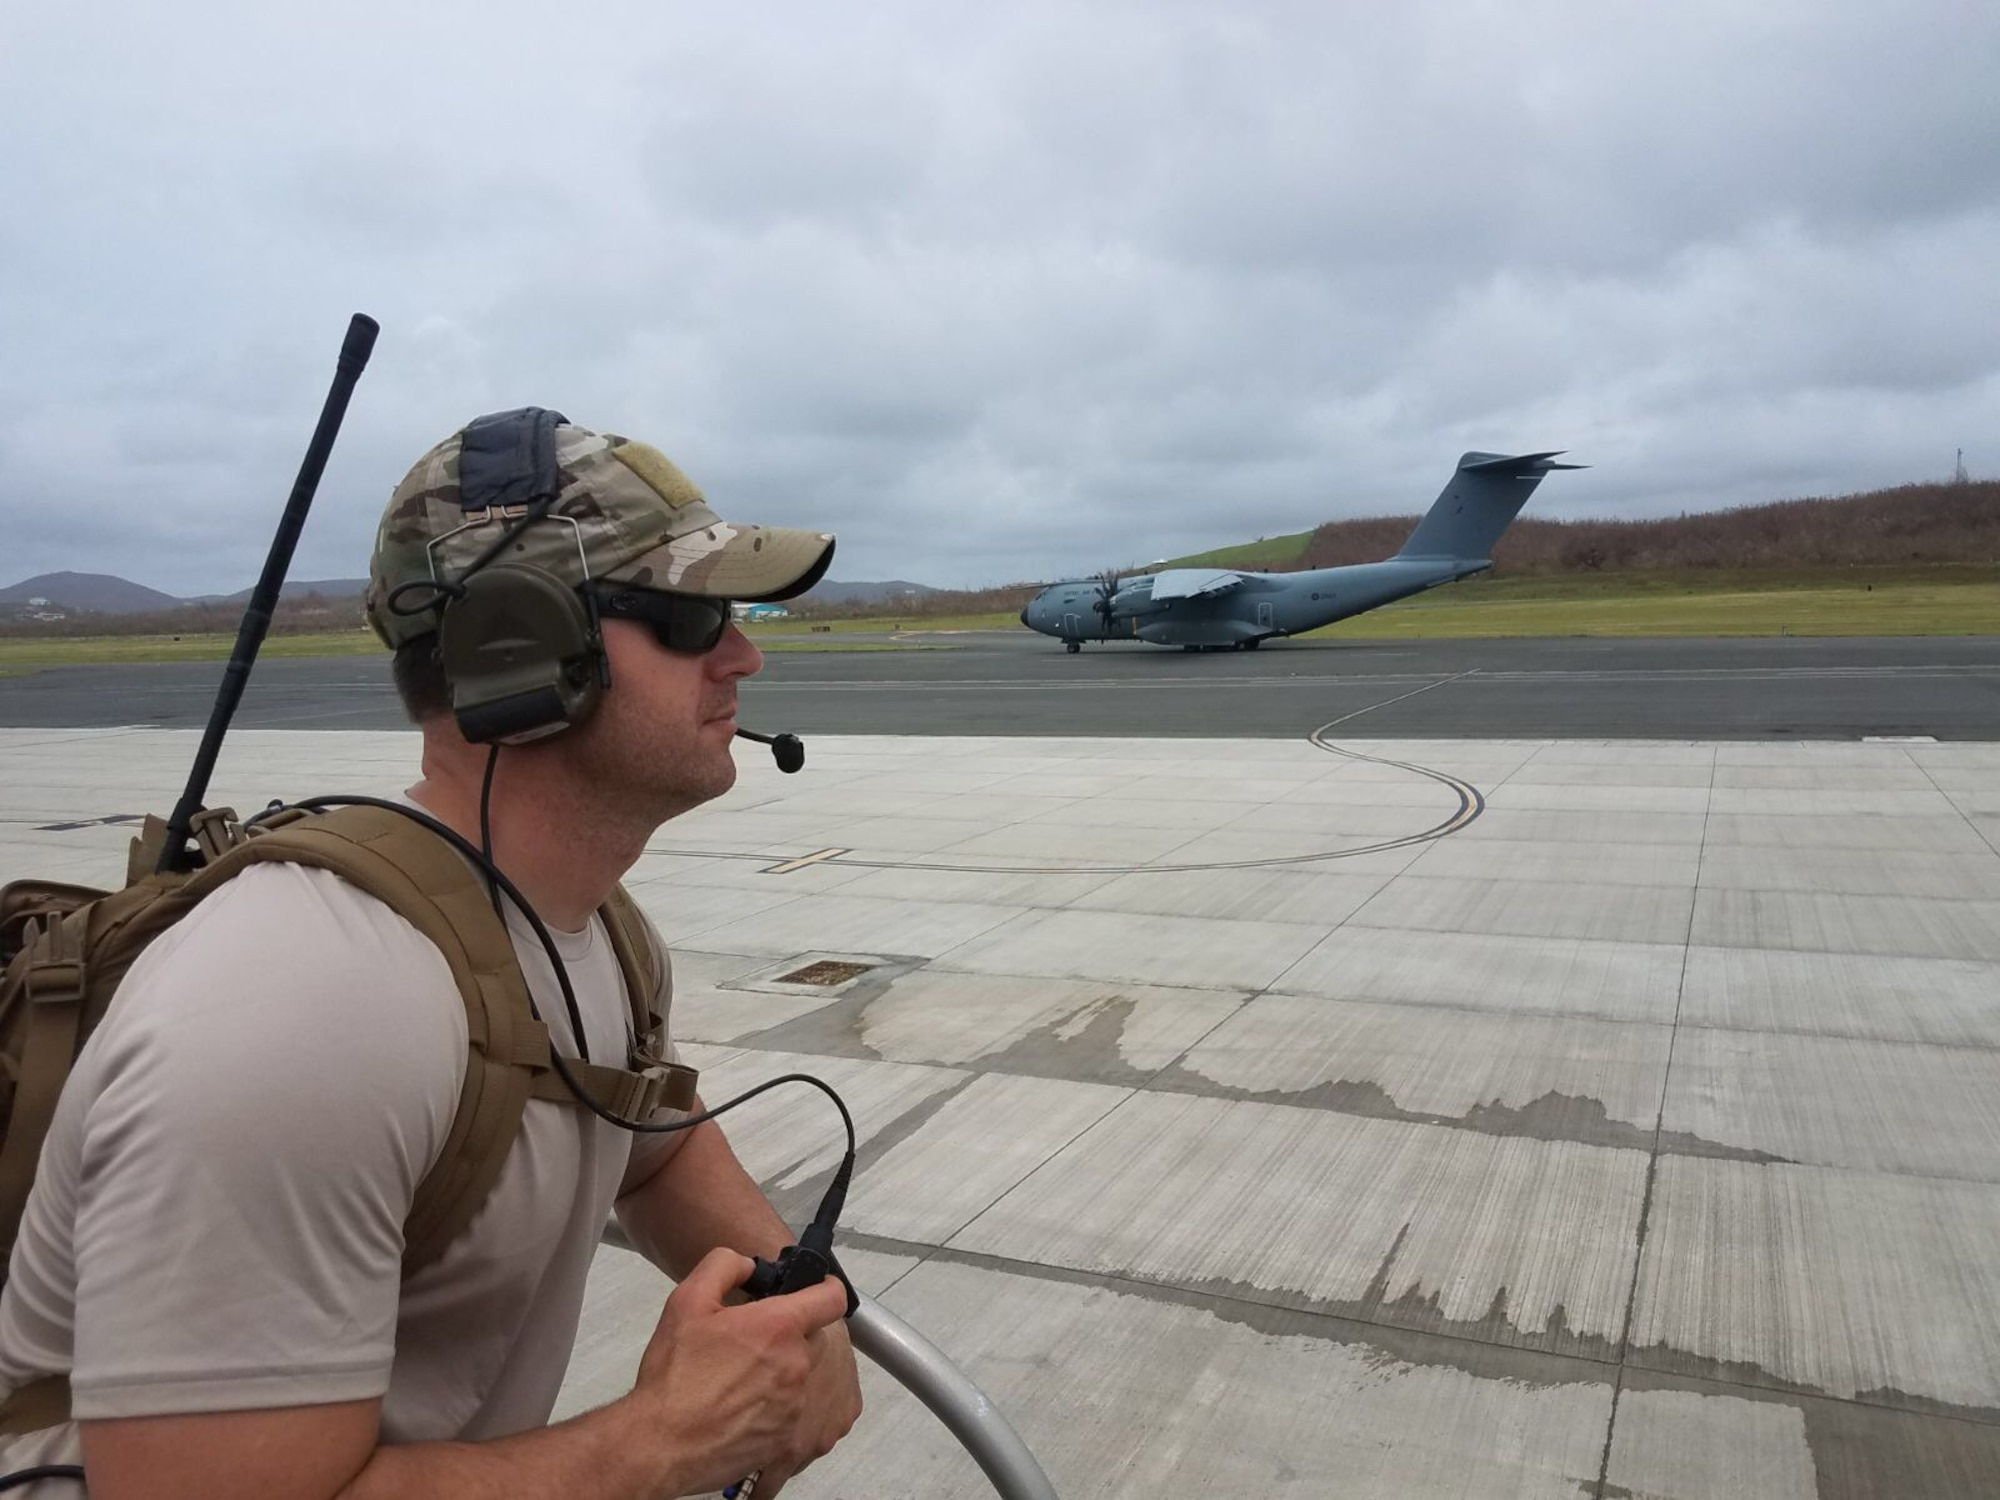 Master Sgt. Harley Bobay, a combat controller in the Kentucky Air National Guard's 123rd Special Tactics Squadron, provides air traffic control to planes delivering relief supplies to Henry E. Rohlsen Airport on St. Croix, U.S. Virgin Islands, Sept. 22, 2017. Bobay is one of seven Airmen from the unit who deployed to the Caribbean to support recovery operations following Hurricane Maria.